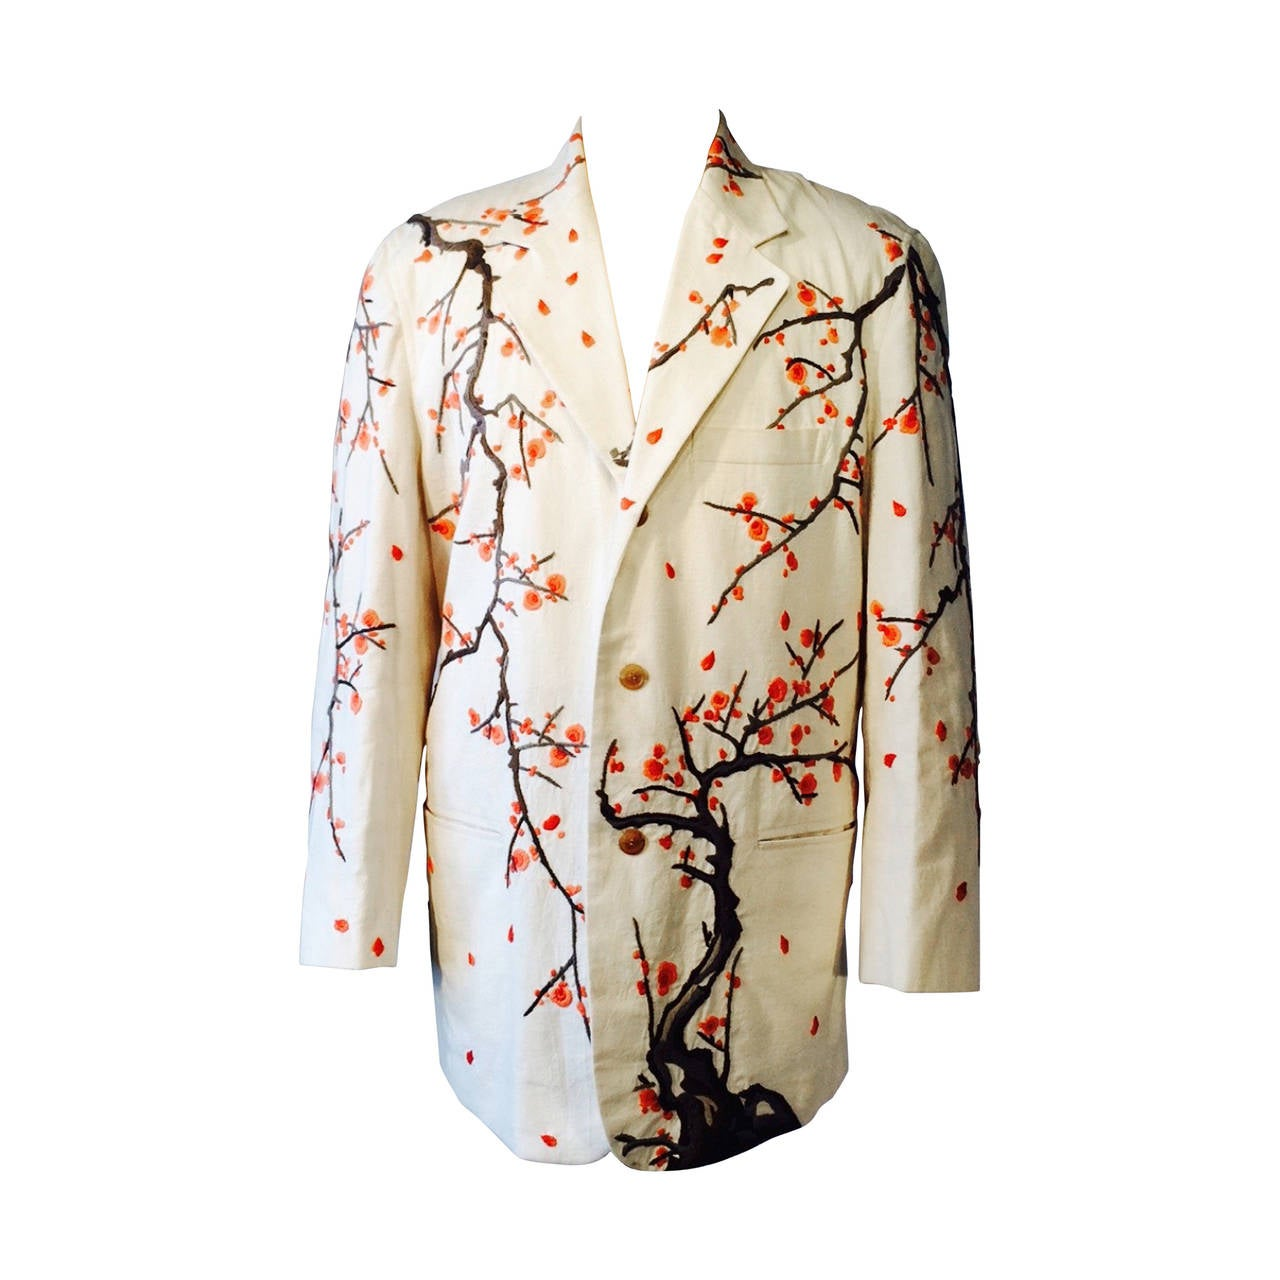 Gents issey miyake cherry blossom embroidered jacket s